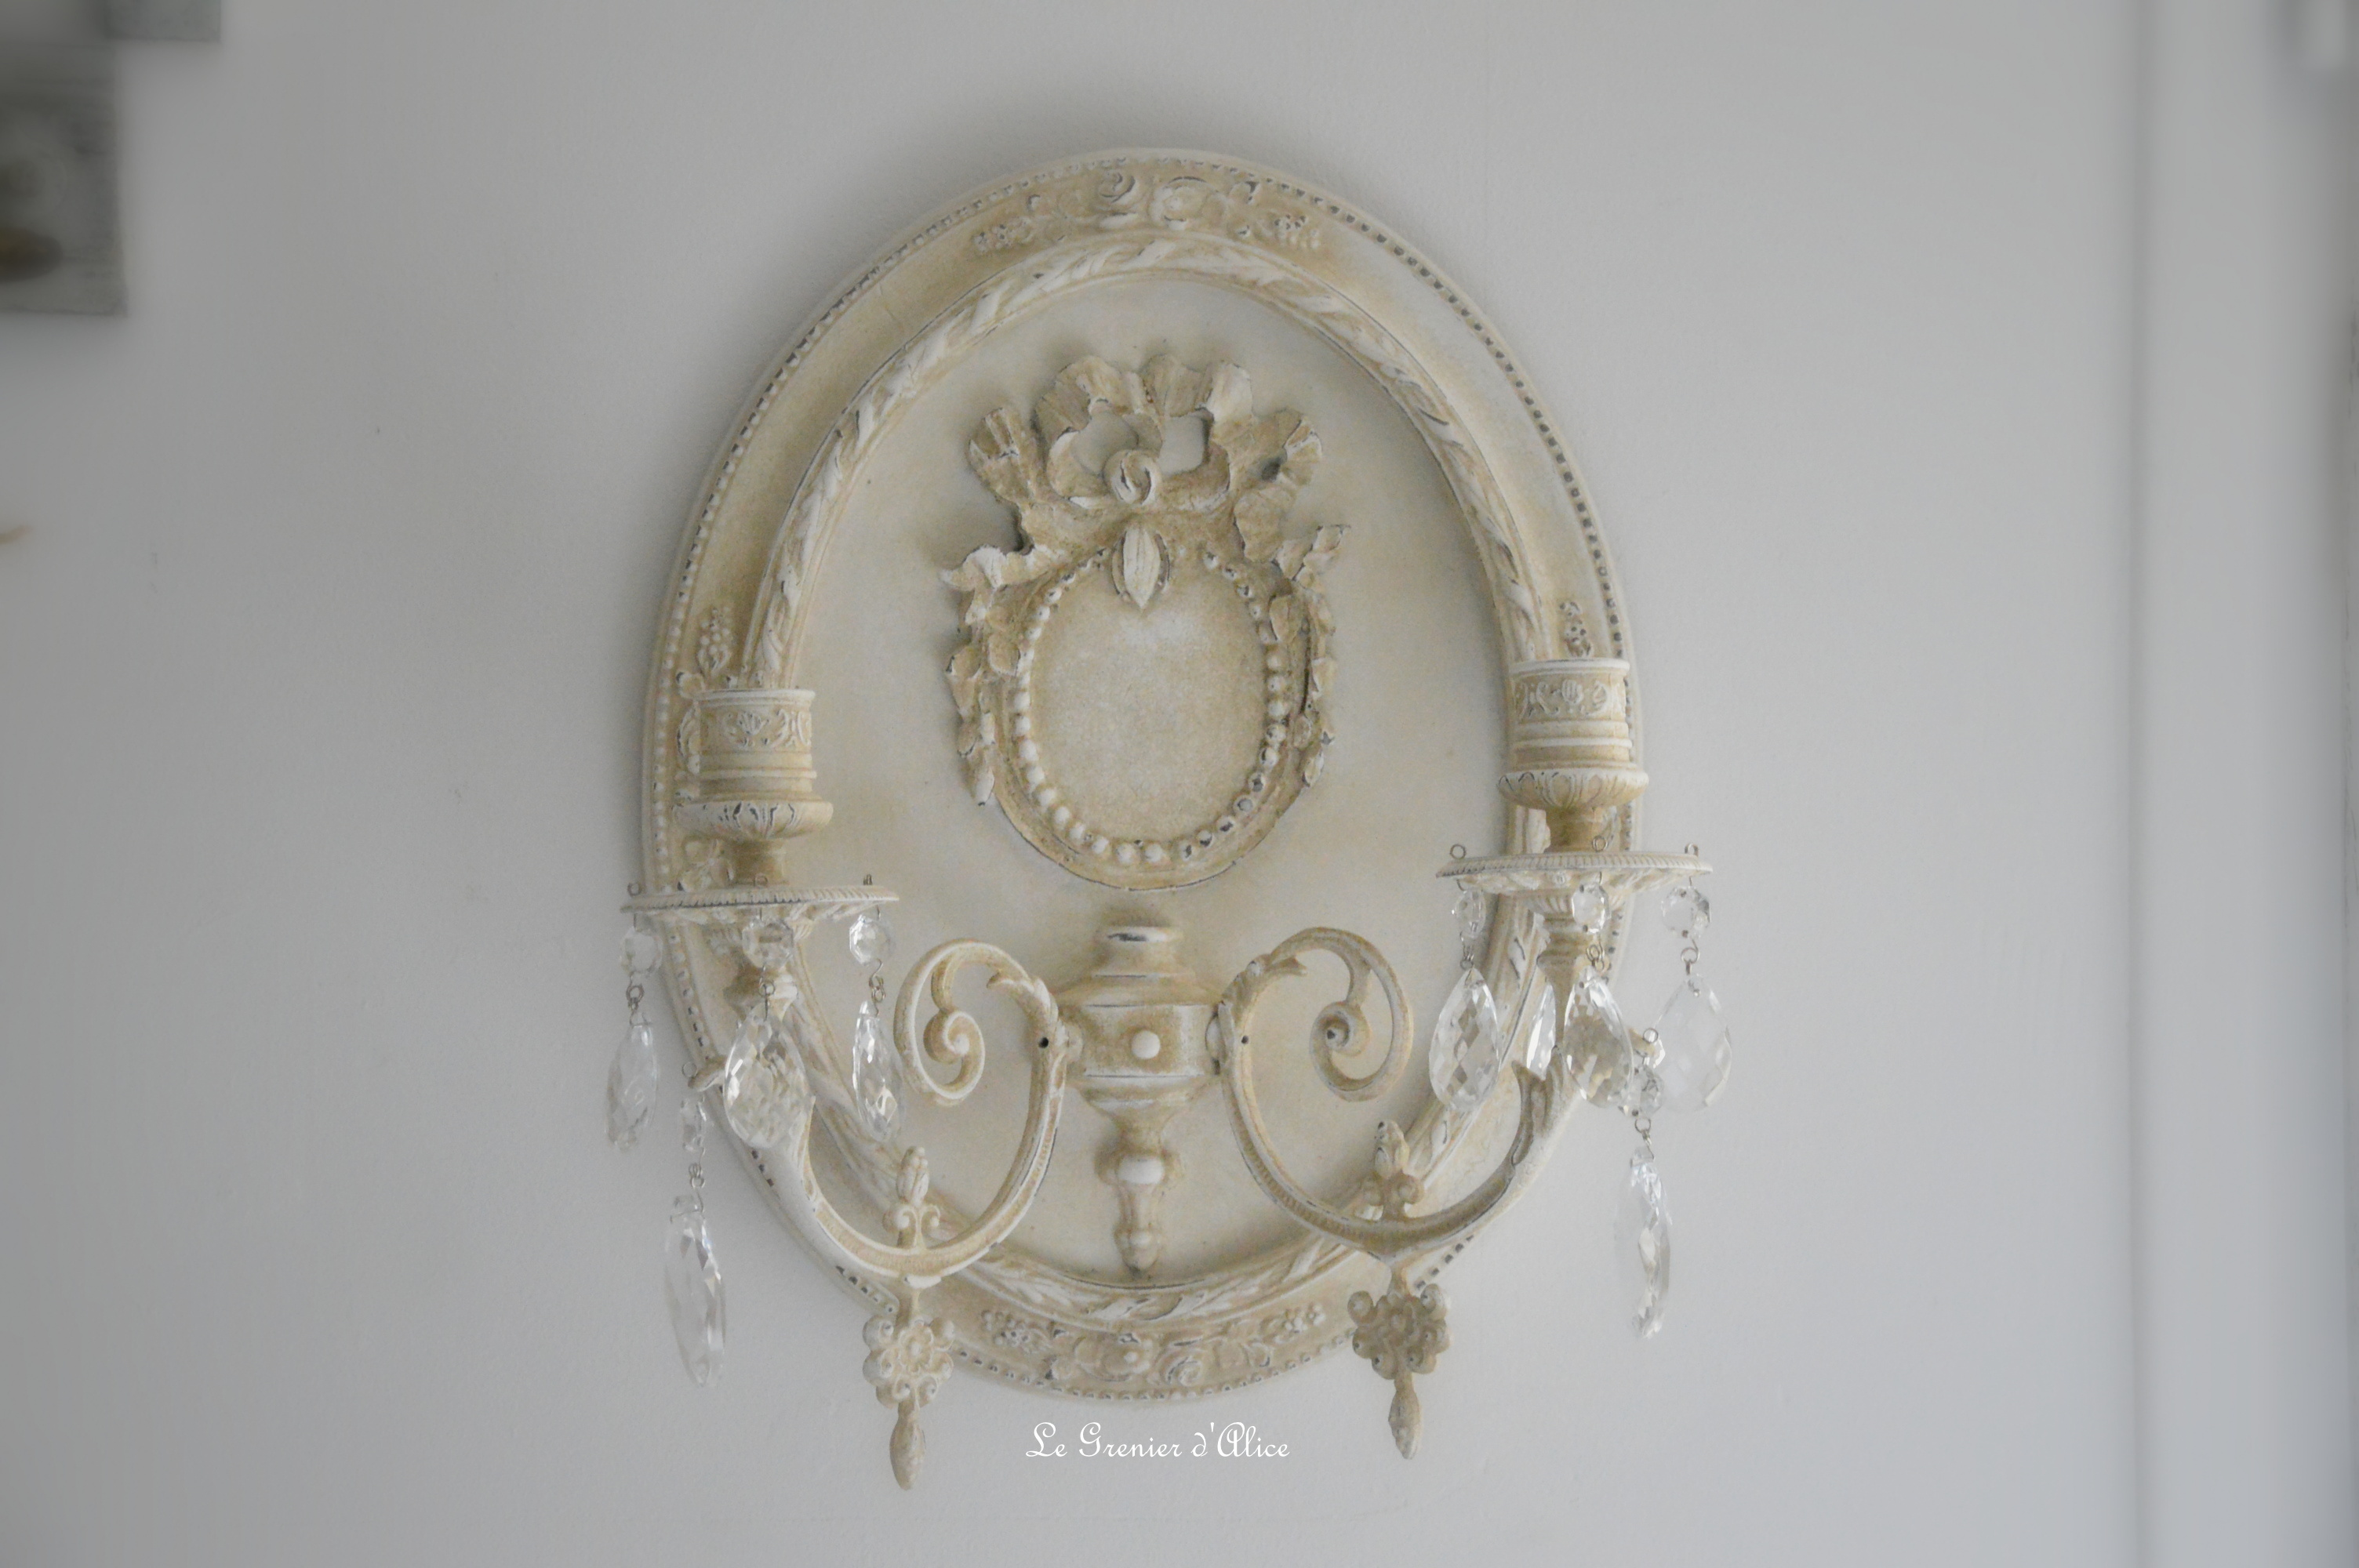 Applique bougeoirs romantique shabby chic creation le grrenier dalice patine lin pampille cristal cadre oval applique ancienne deux branches